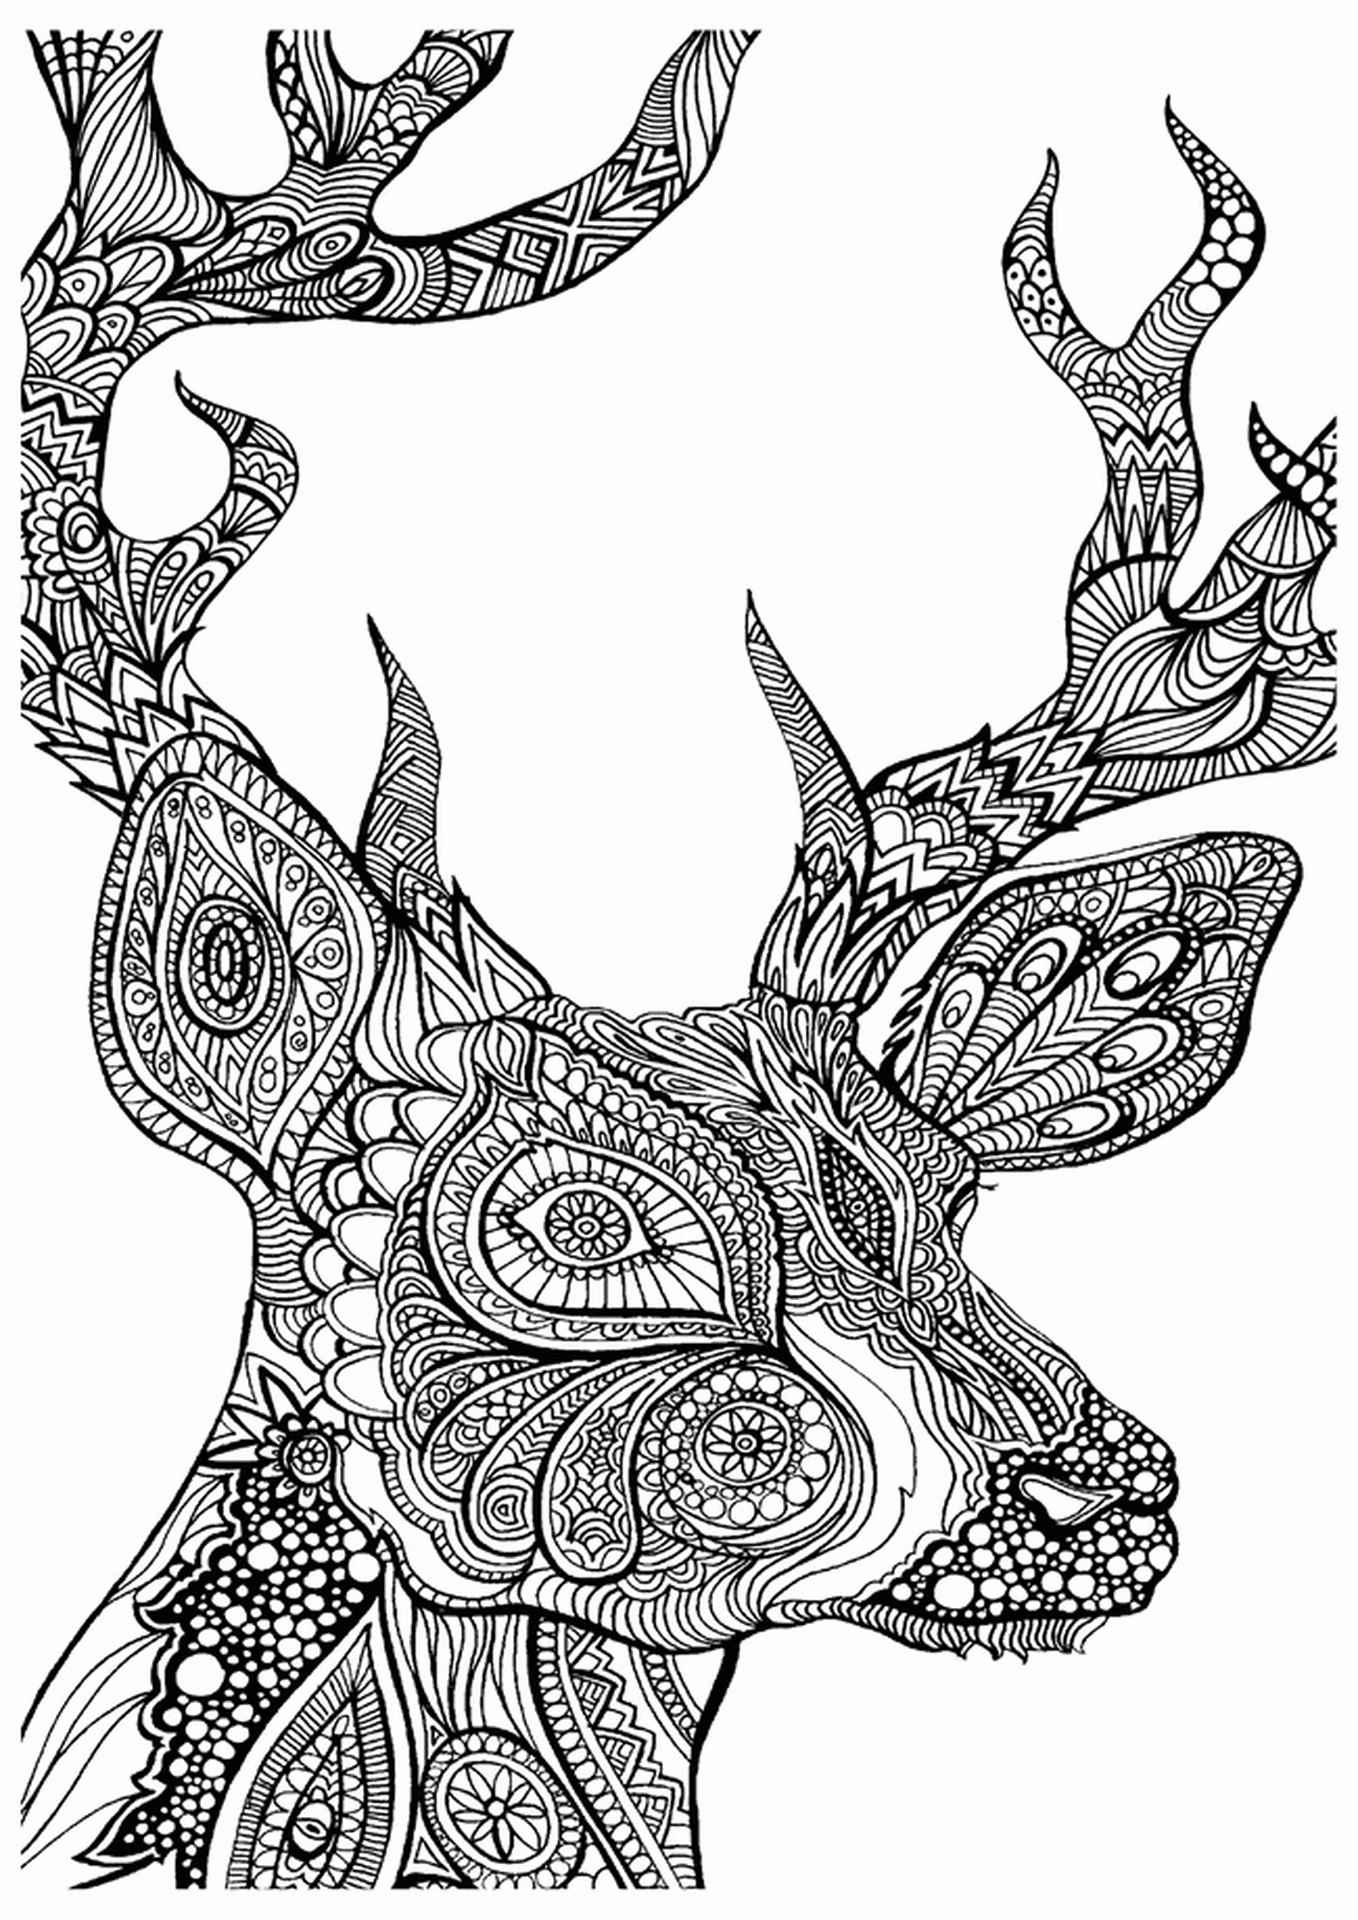 Intristic Designed Buck Coloring Page